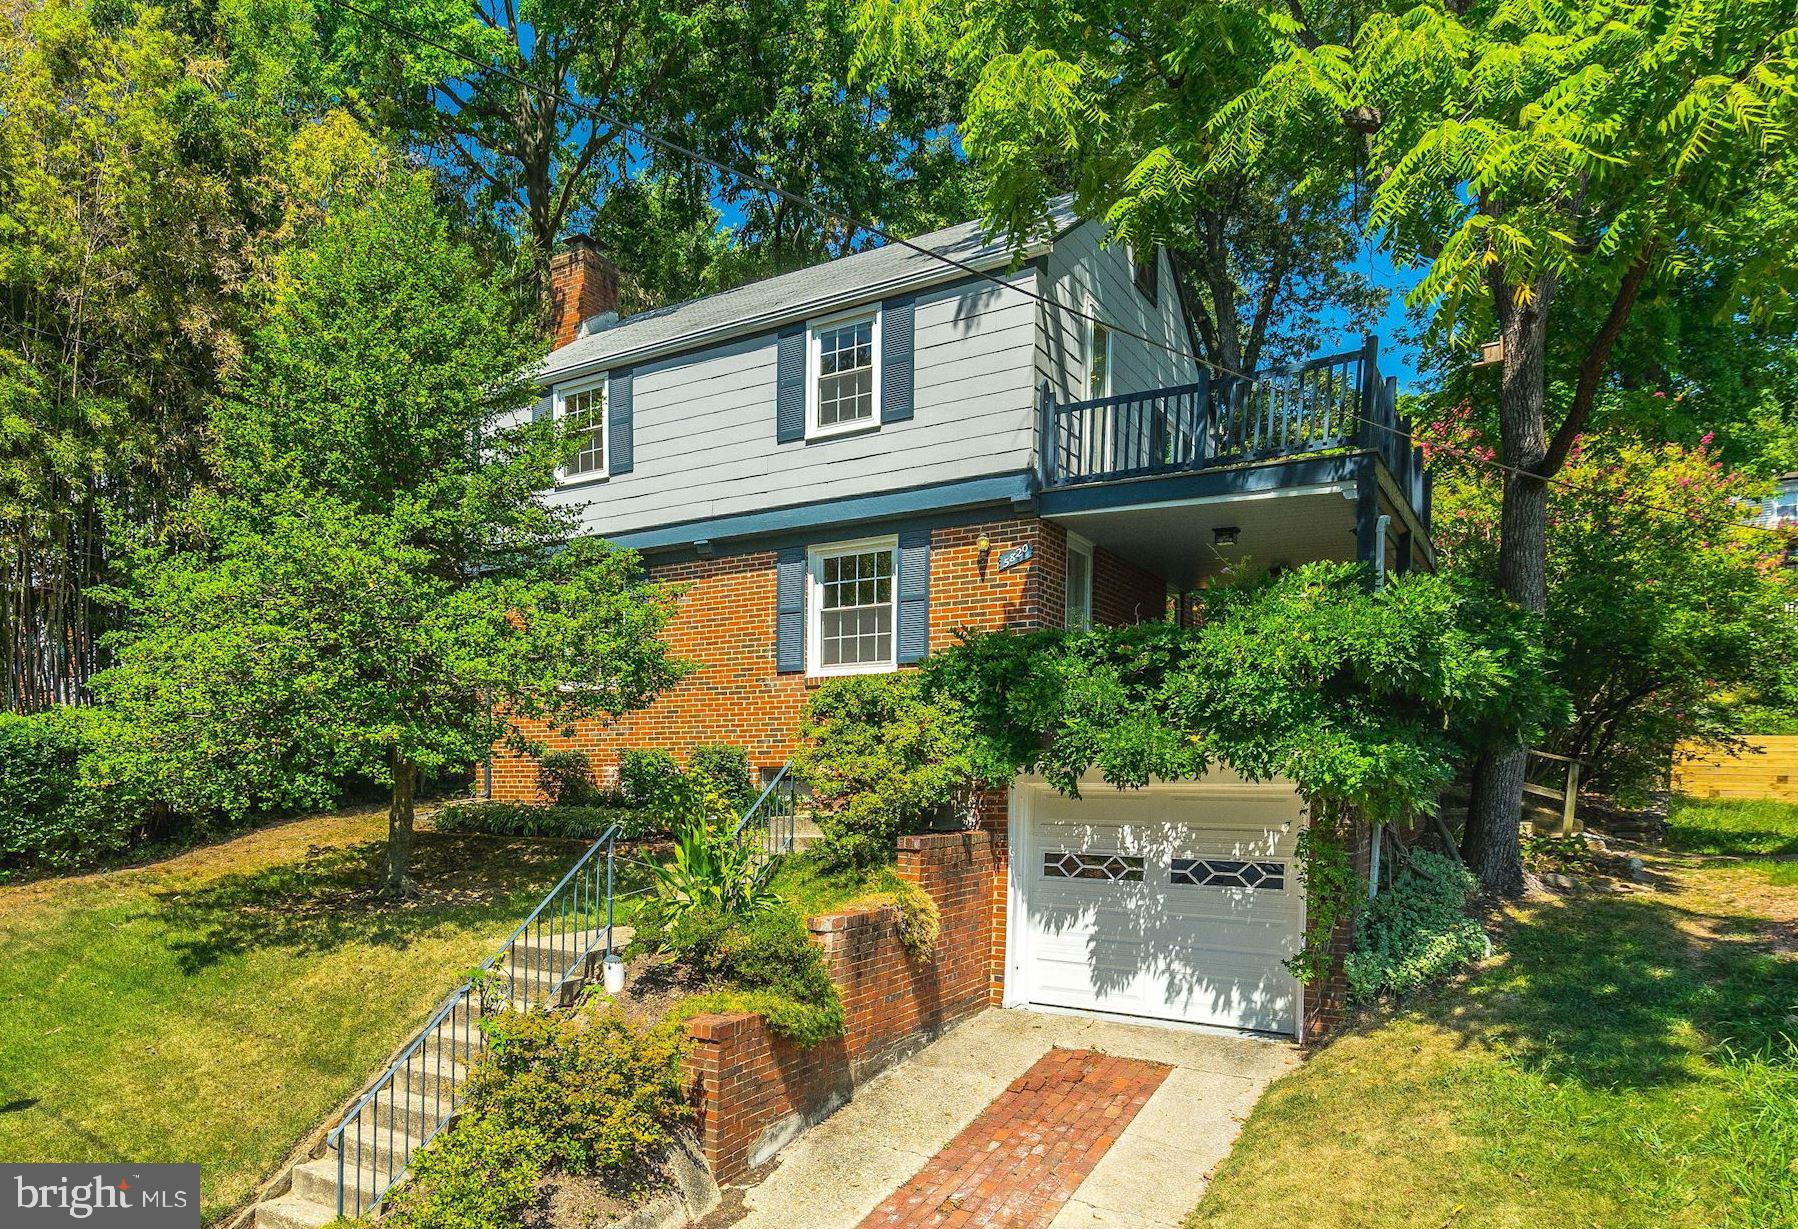 5820 CARLYLE STREET, CHEVERLY, MD 20785